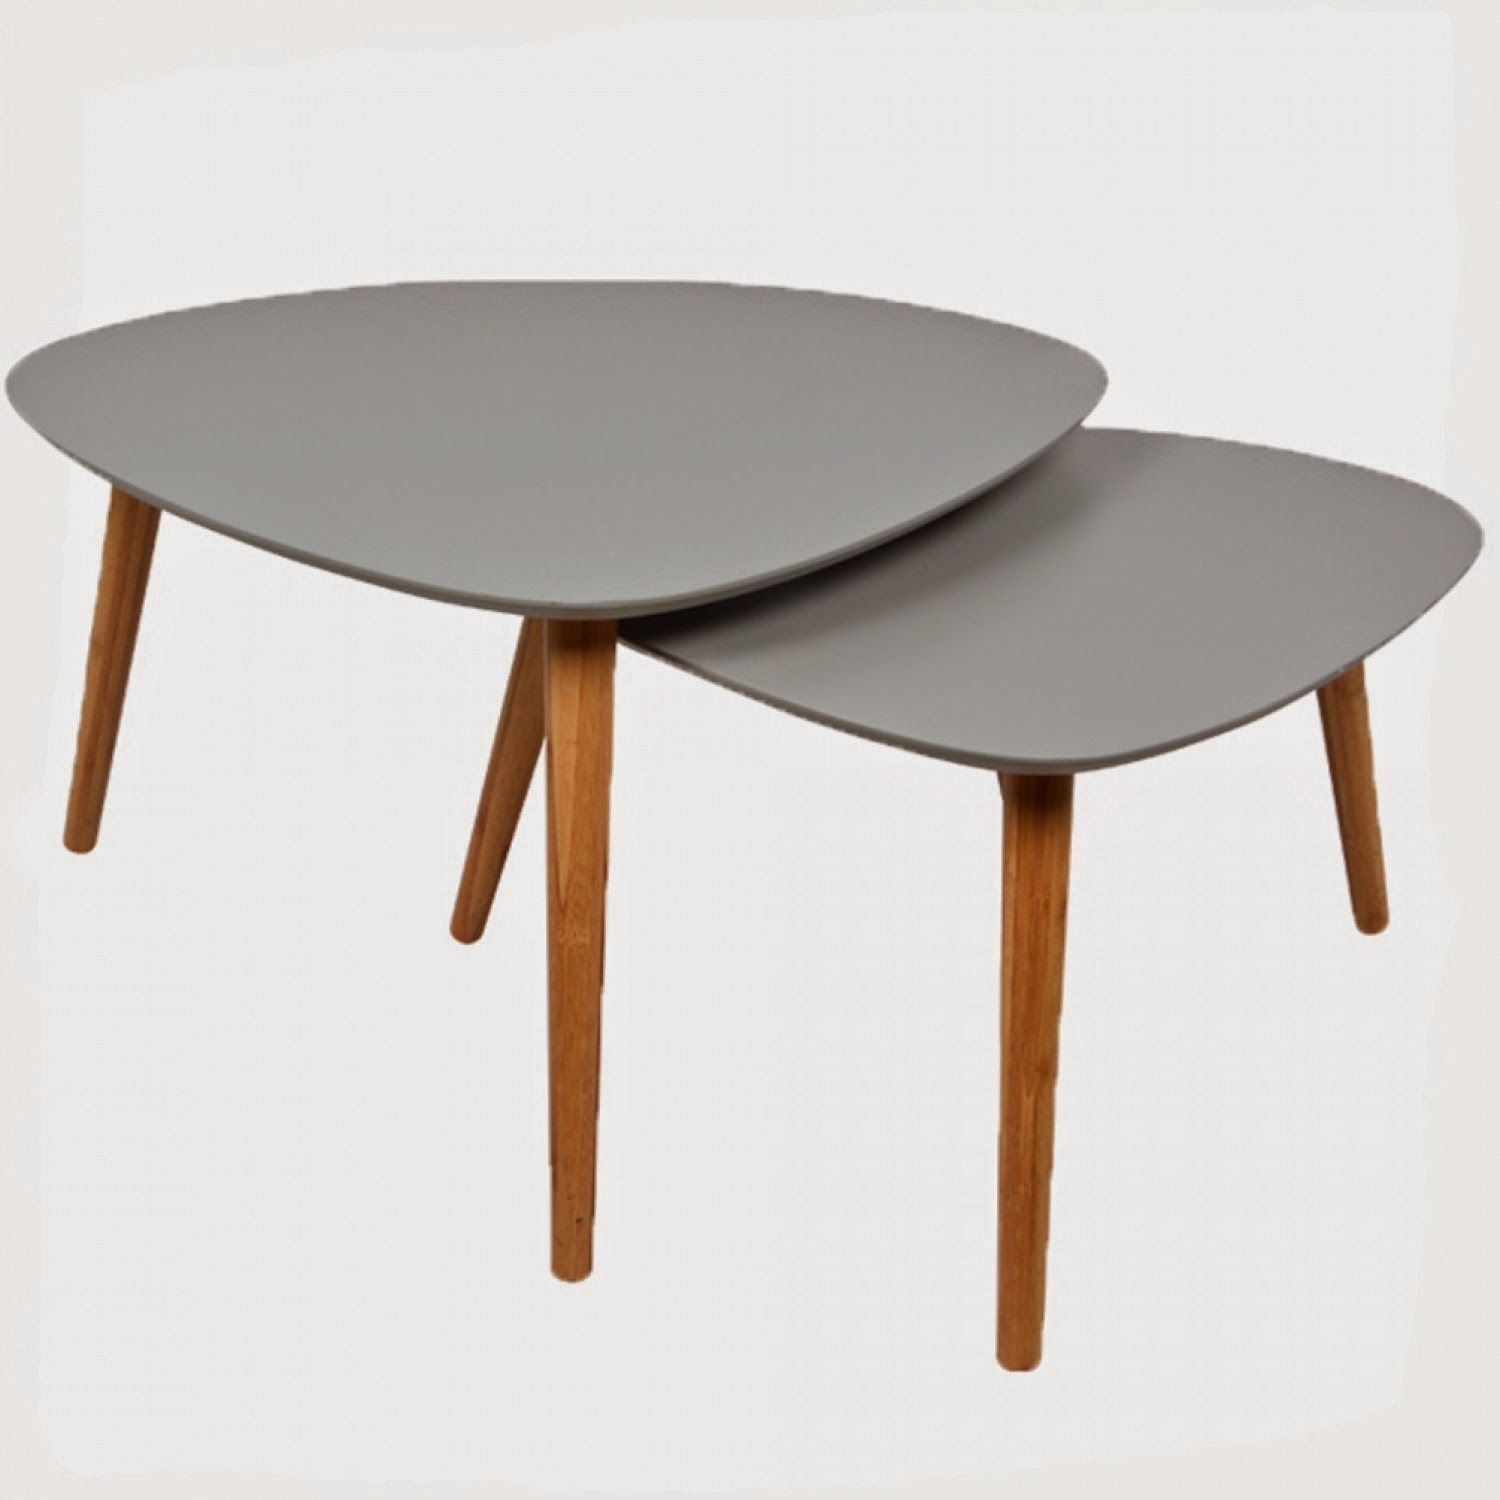 Table basse scandinave gigogne images for Table basse scandinave gigogne